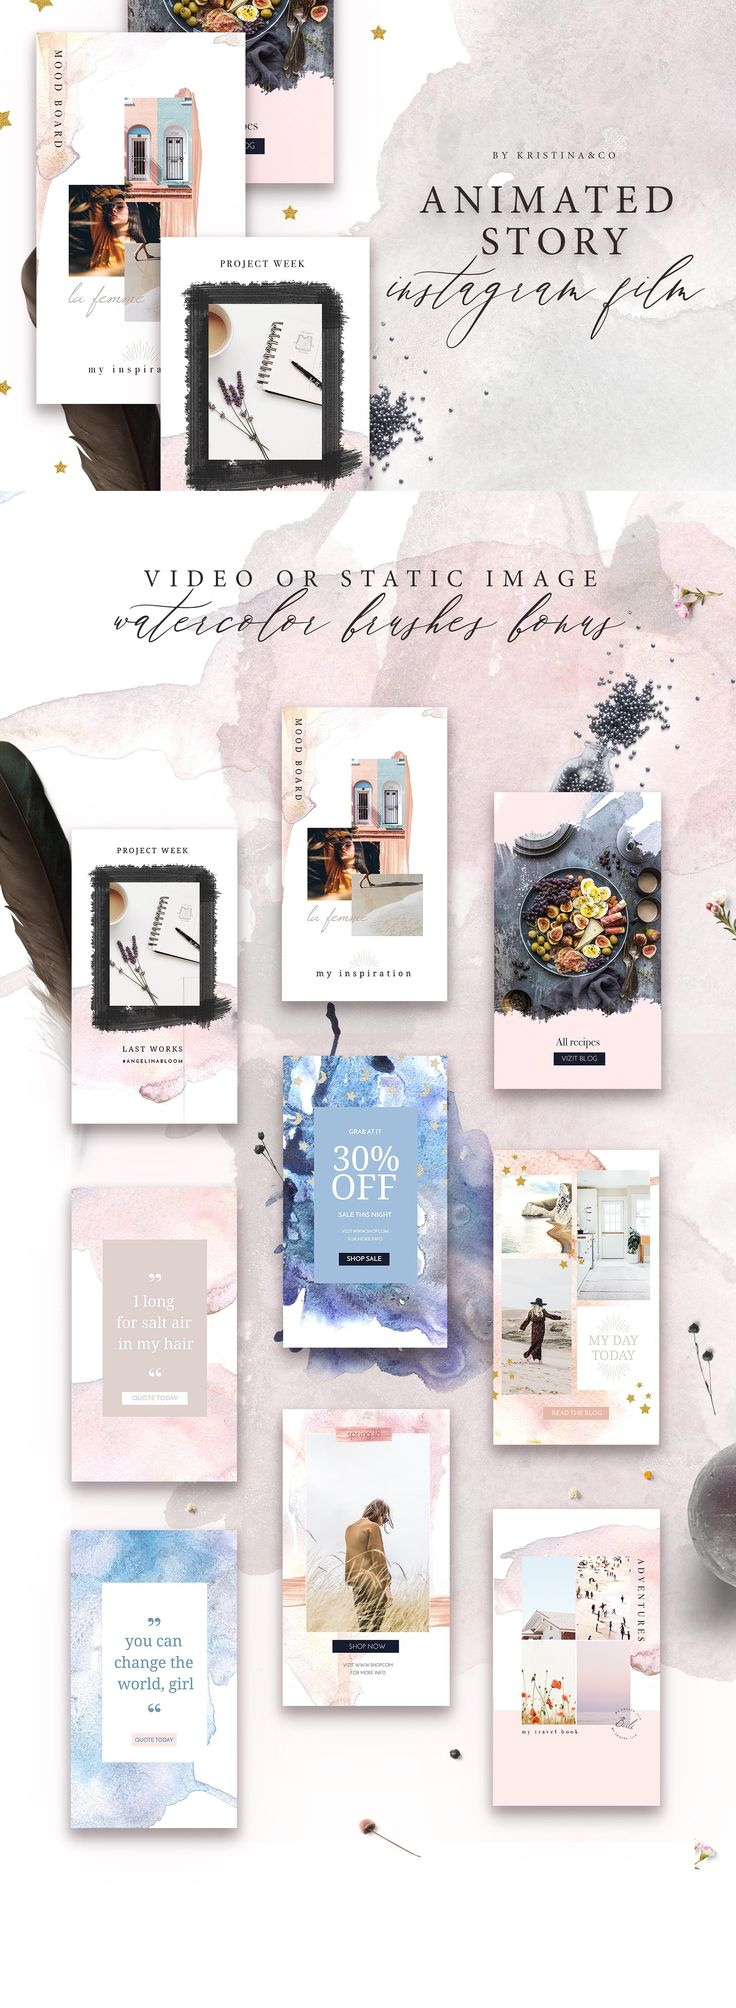 Animated Stories For instagram by Kristina&Co on @creativemarket #AD